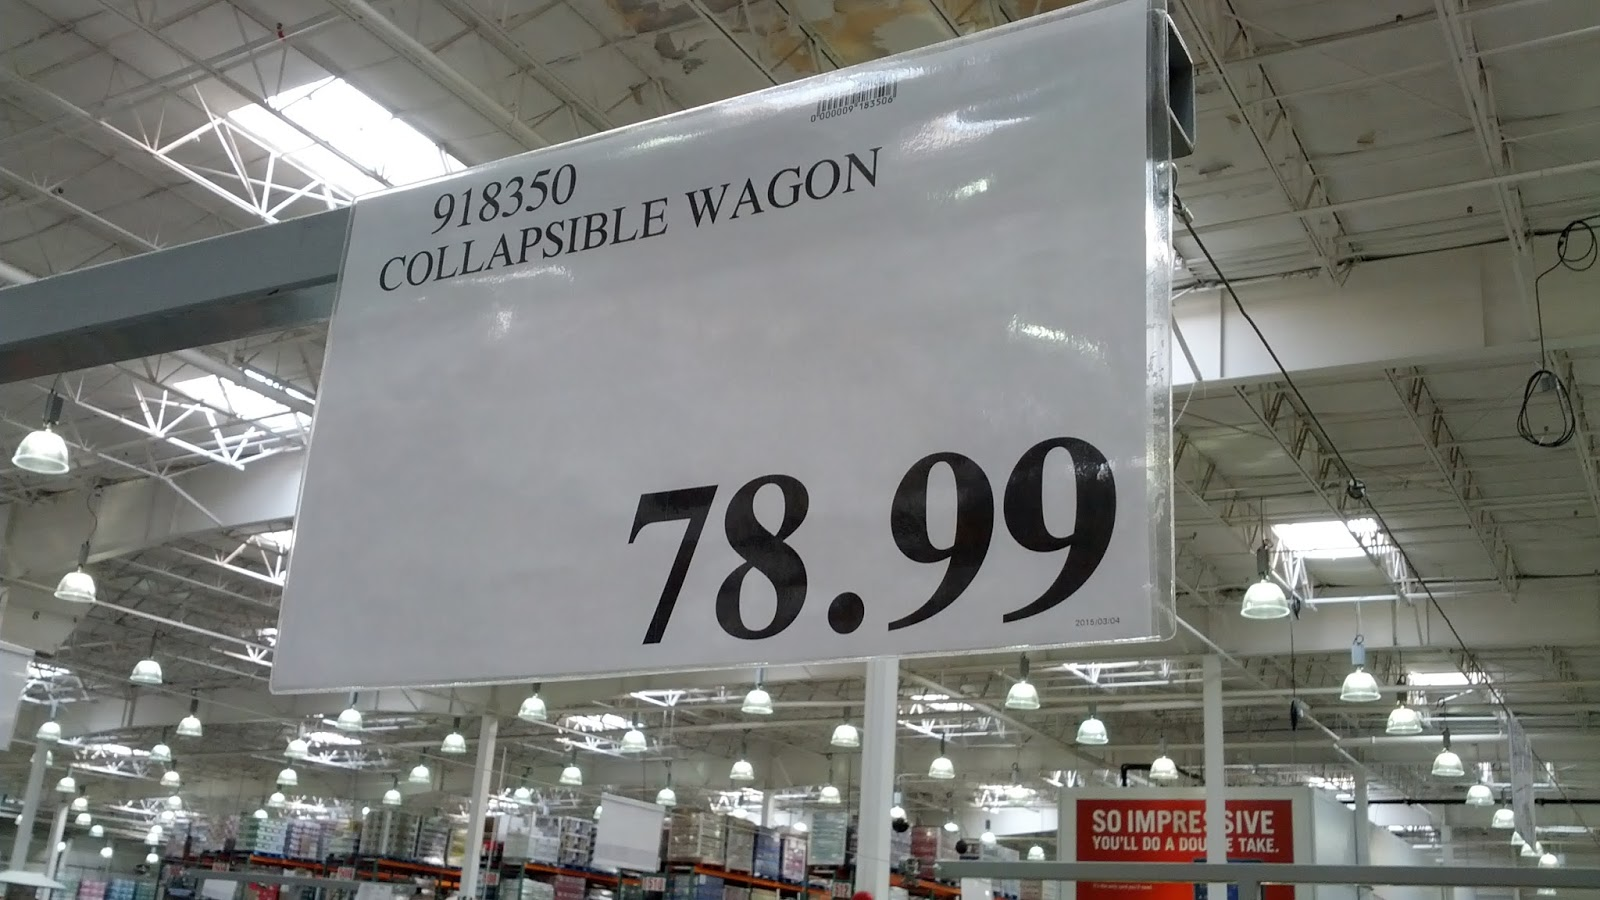 Deal for Foldable Wagon at Costco in Canada